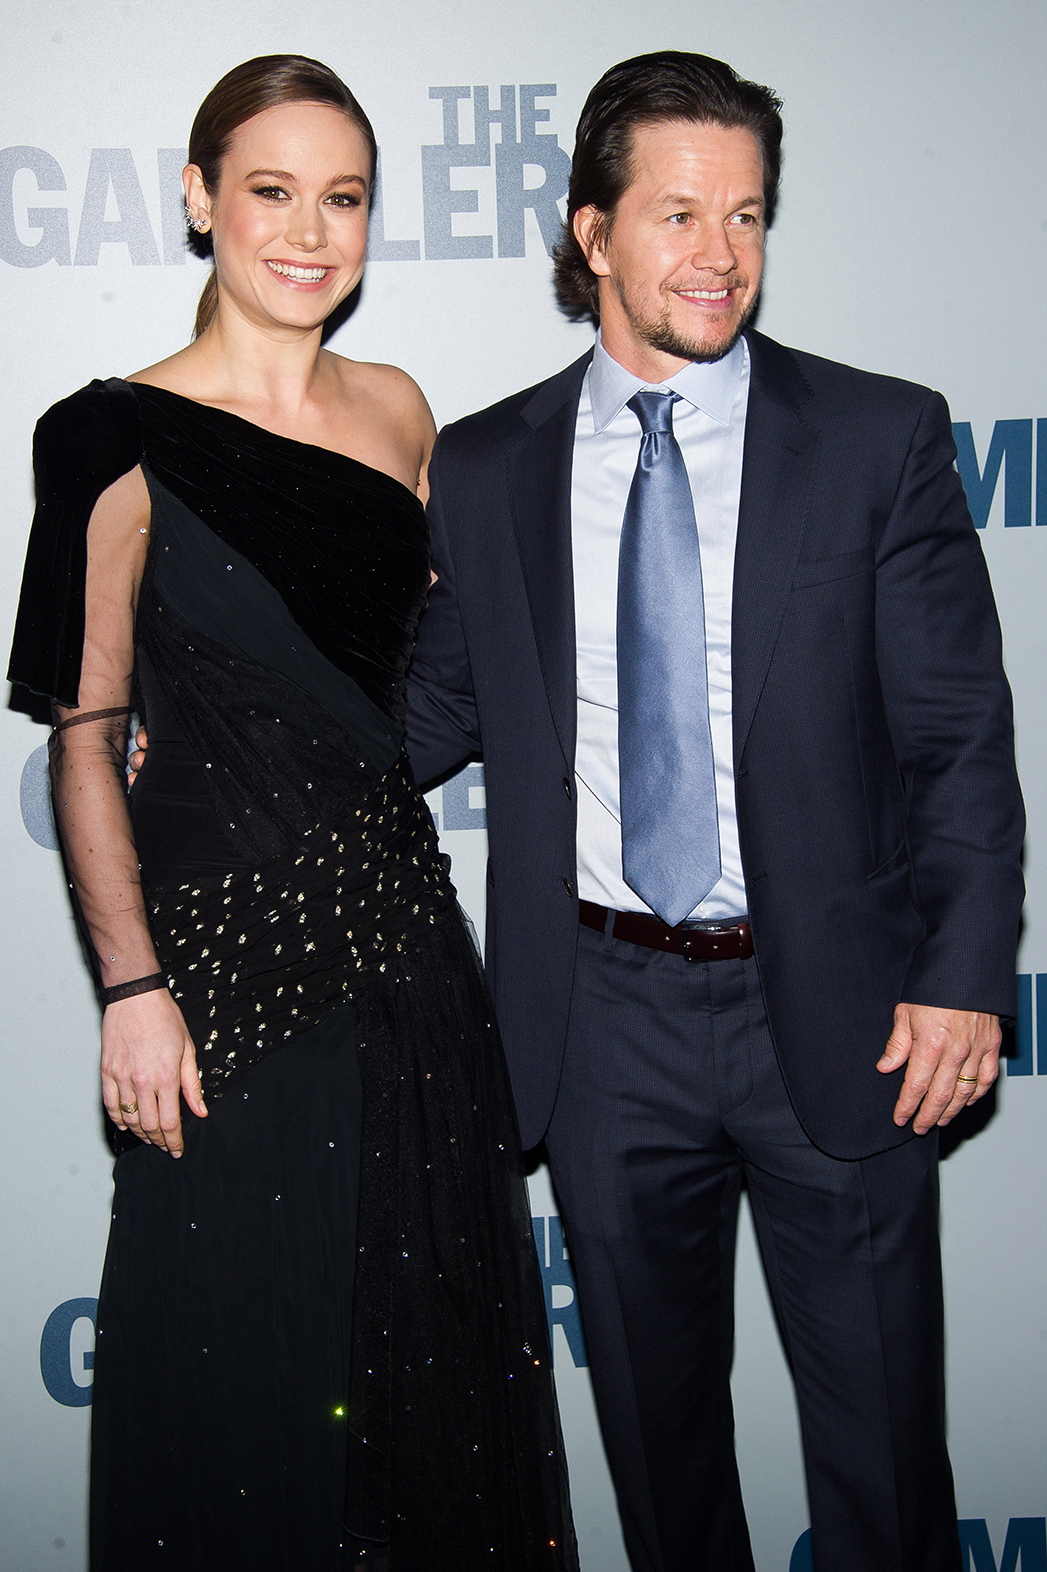 Brie Larson Mark Wahlberg The Gambler NYC Premiere P 2014